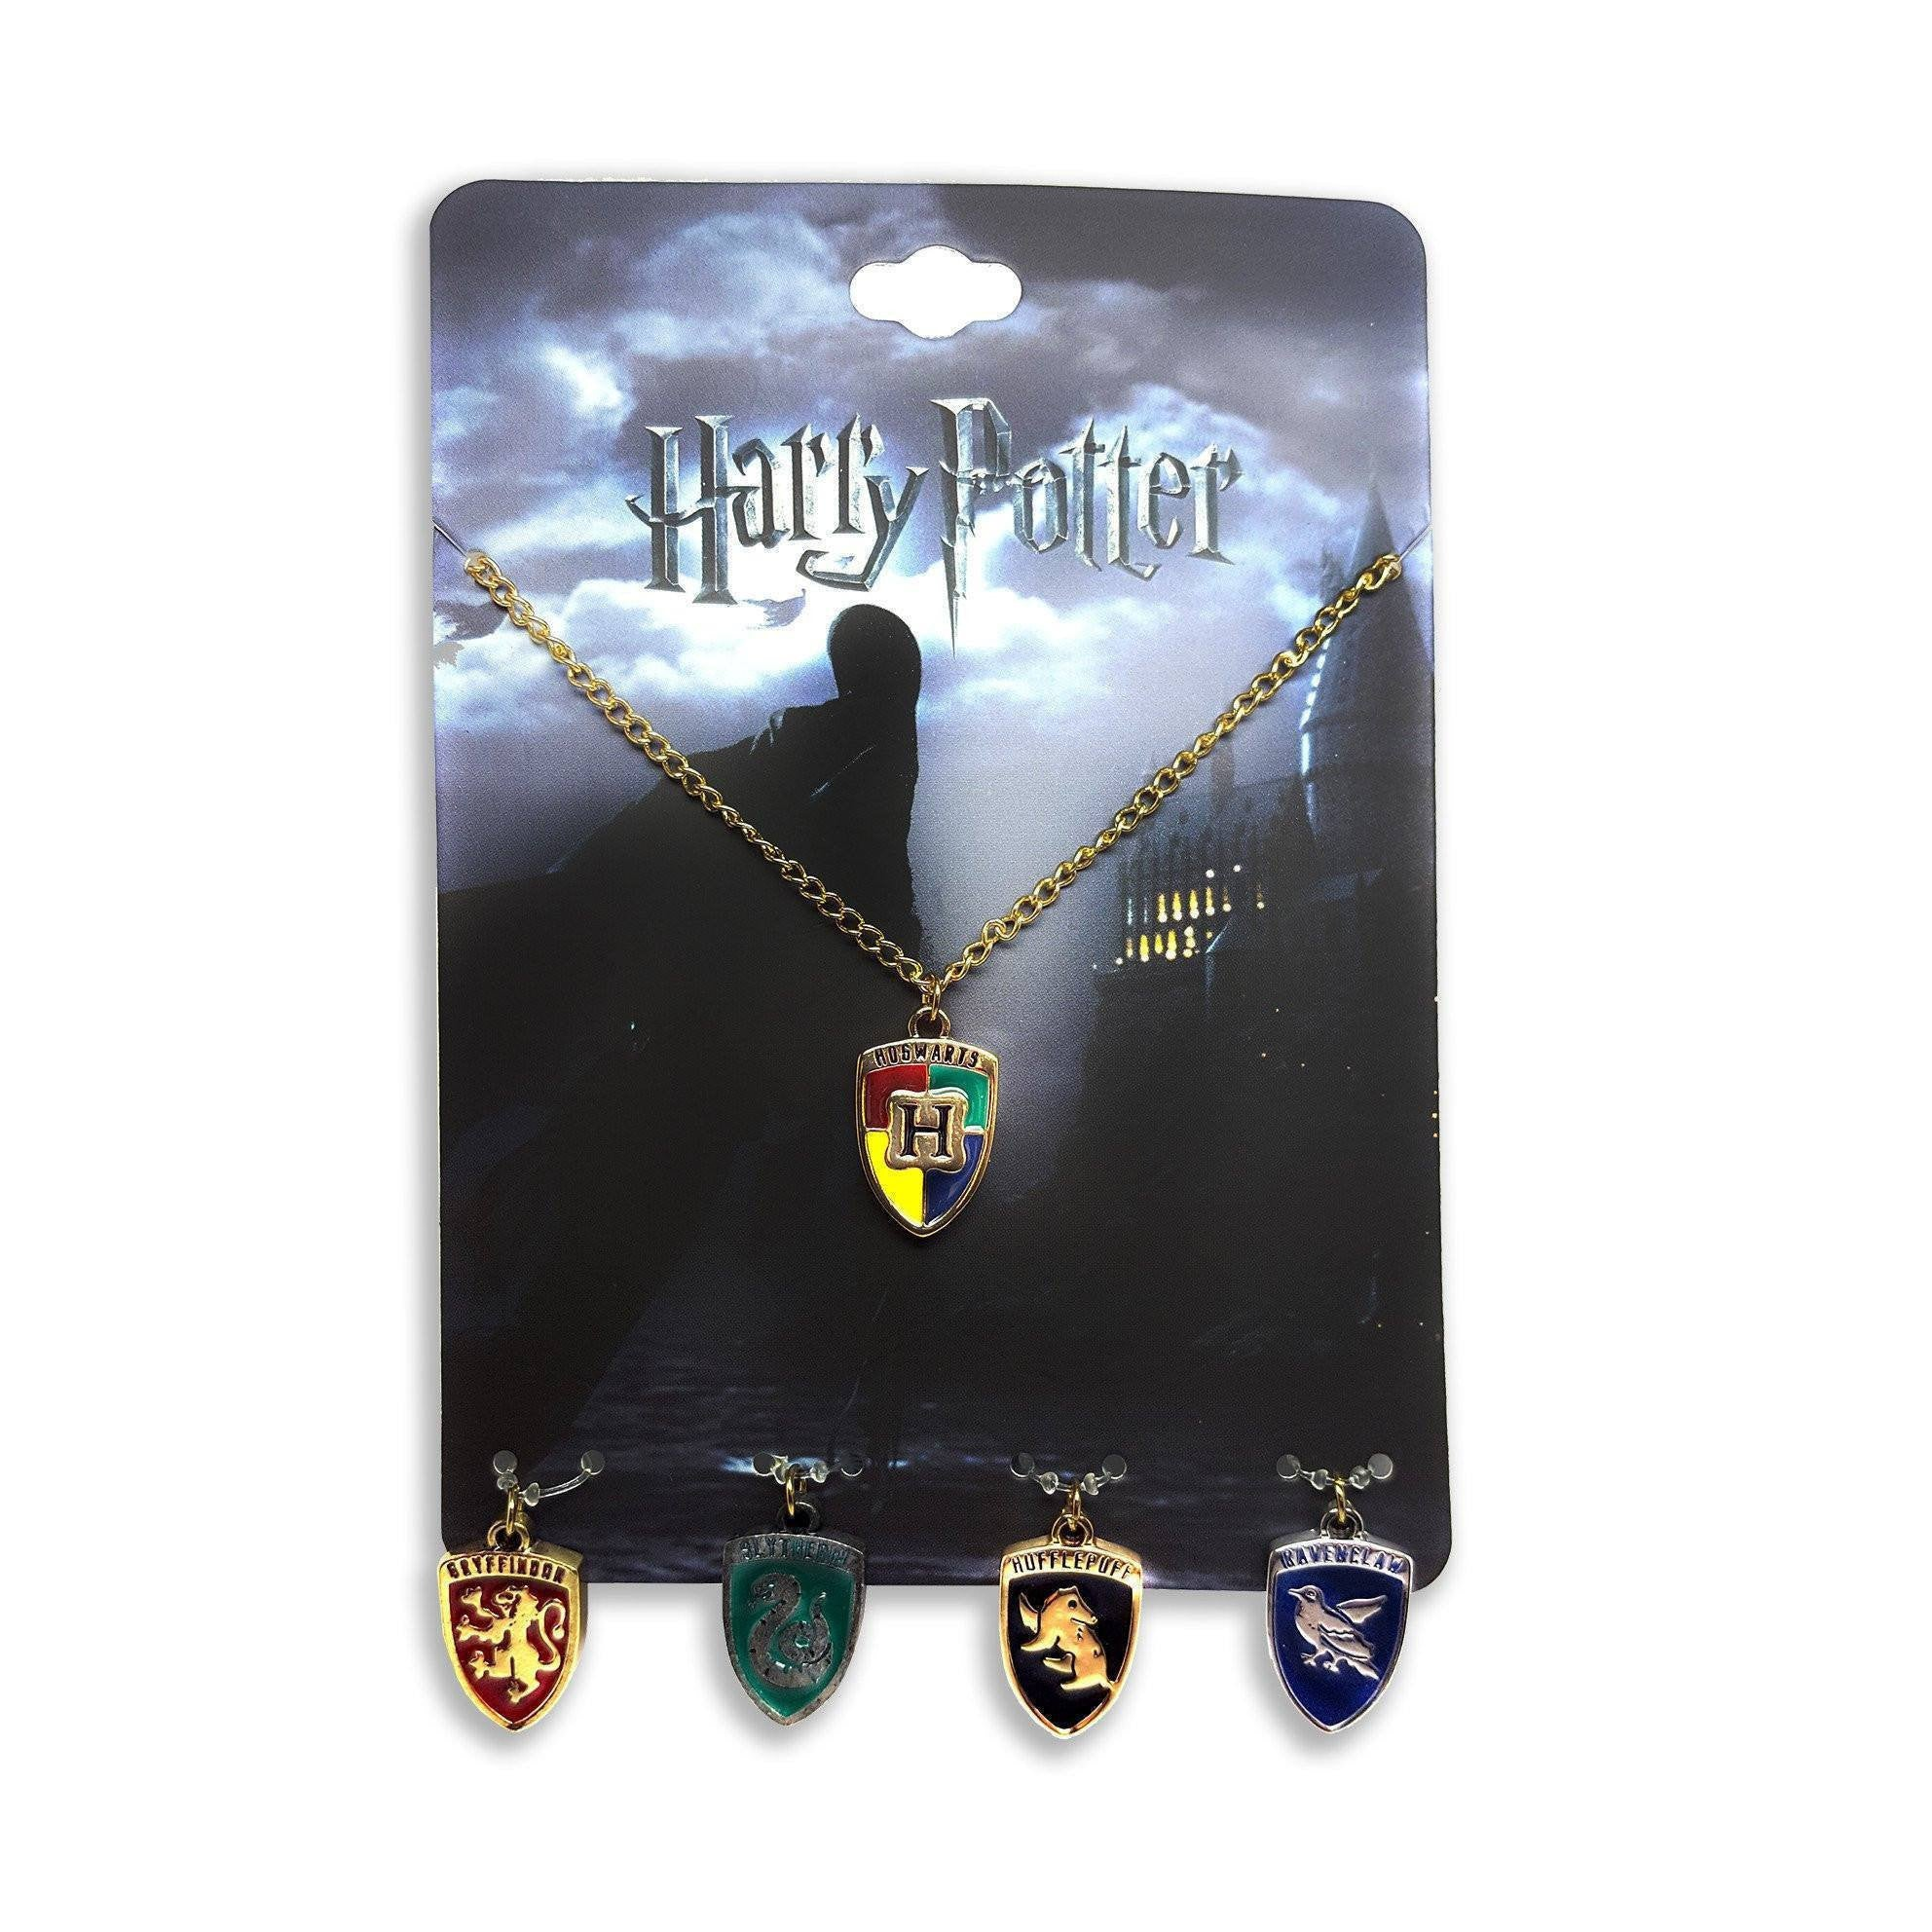 Harry Potter™ Officially Licensed Hogwarts Necklace Kit